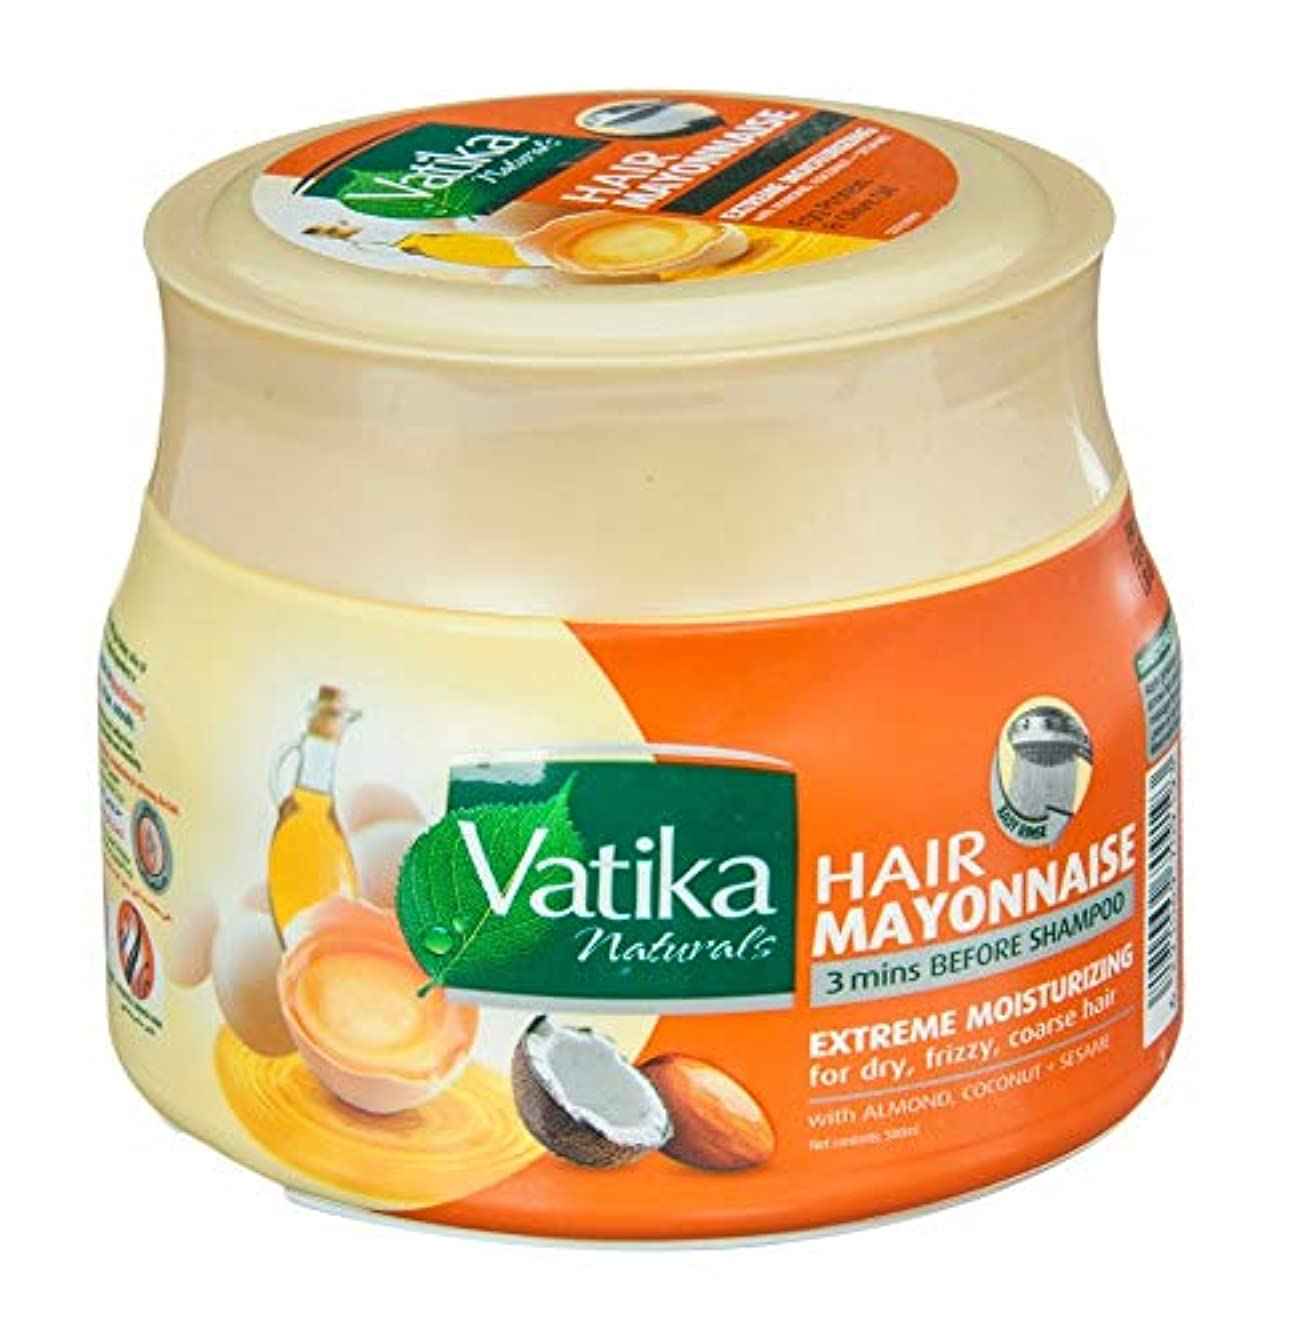 日曜日肺炎魅力的であることへのアピールNatural Vatika Hair Mayonnaise Moisturizing 3 mins Before Shampoo 500 ml (Extreme Moisturizing (Almond, Coconut...